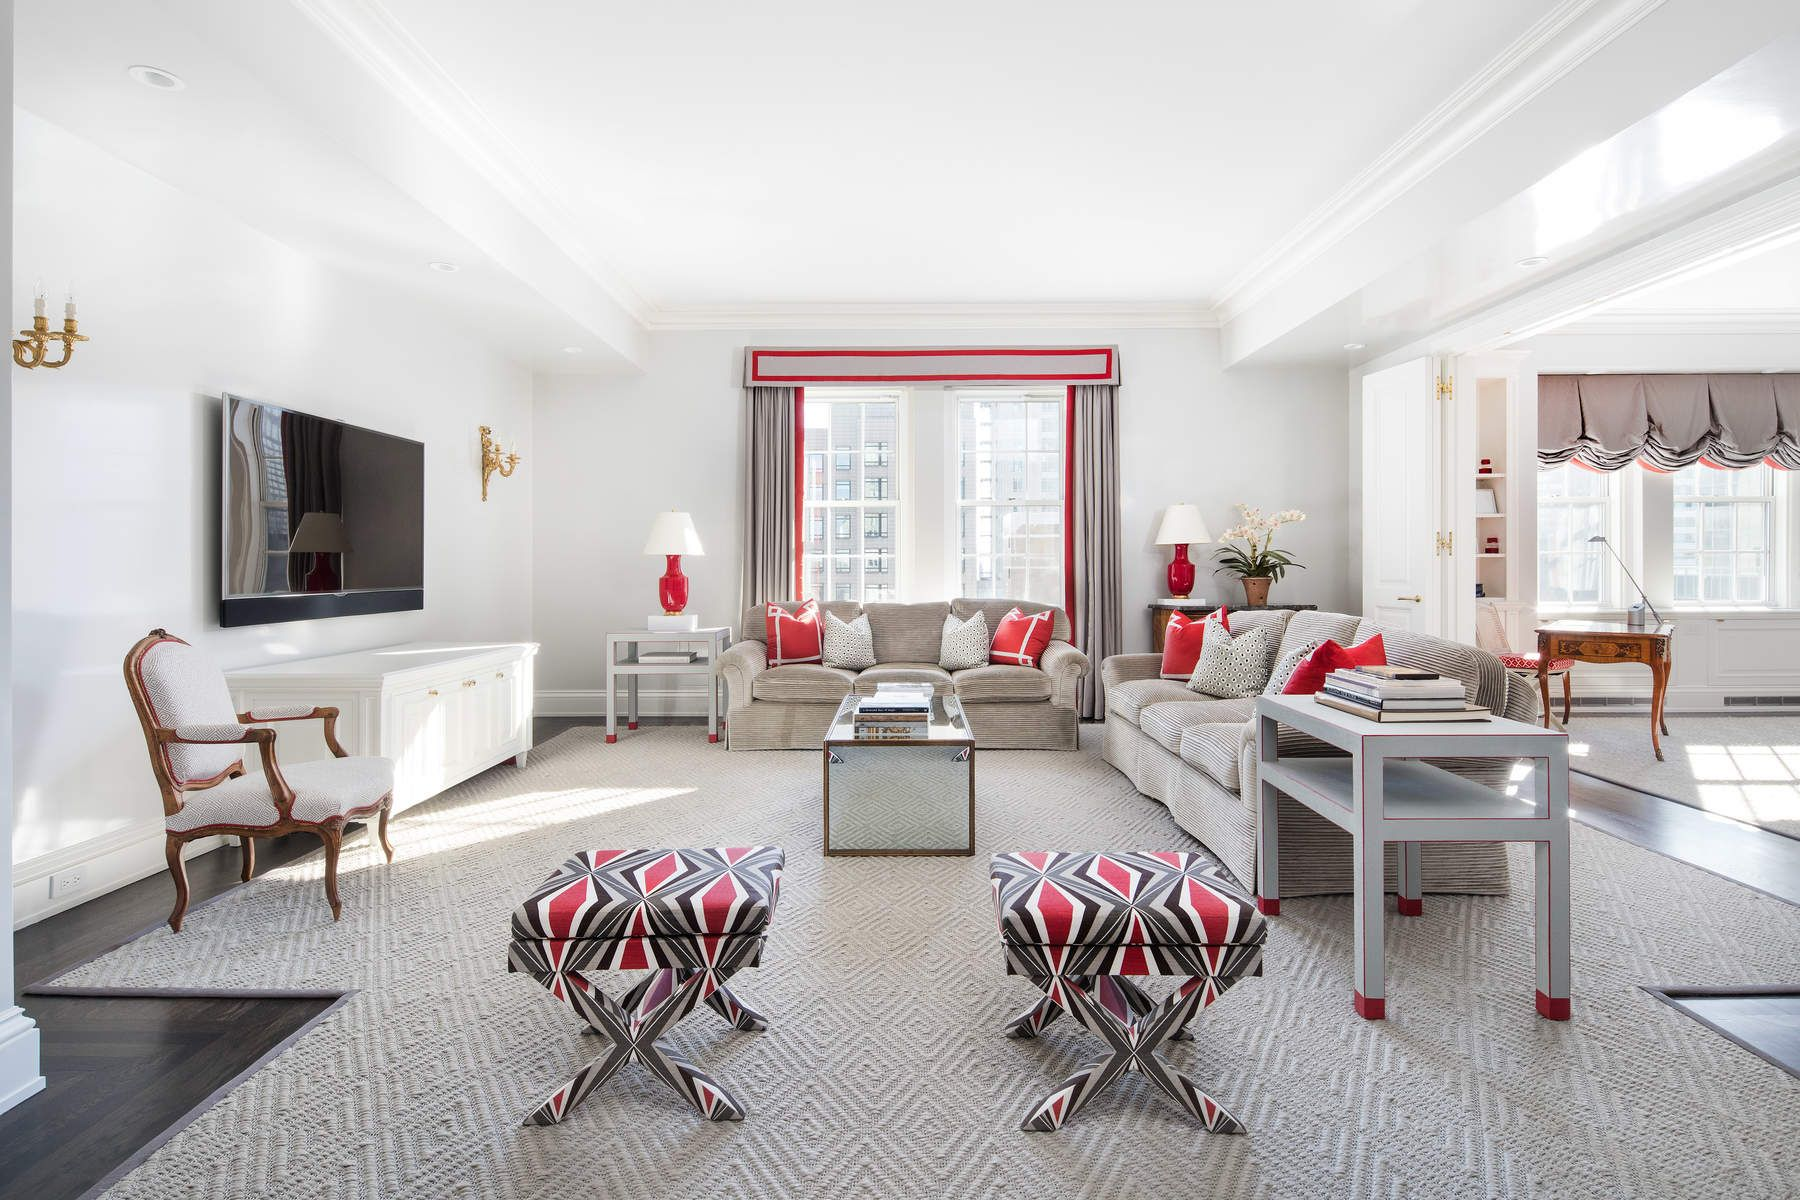 Co-op for Sale at 795 Fifth Avenue Apt 2711 795 Fifth Avenue Apt 2711 New York, New York 10065 United States